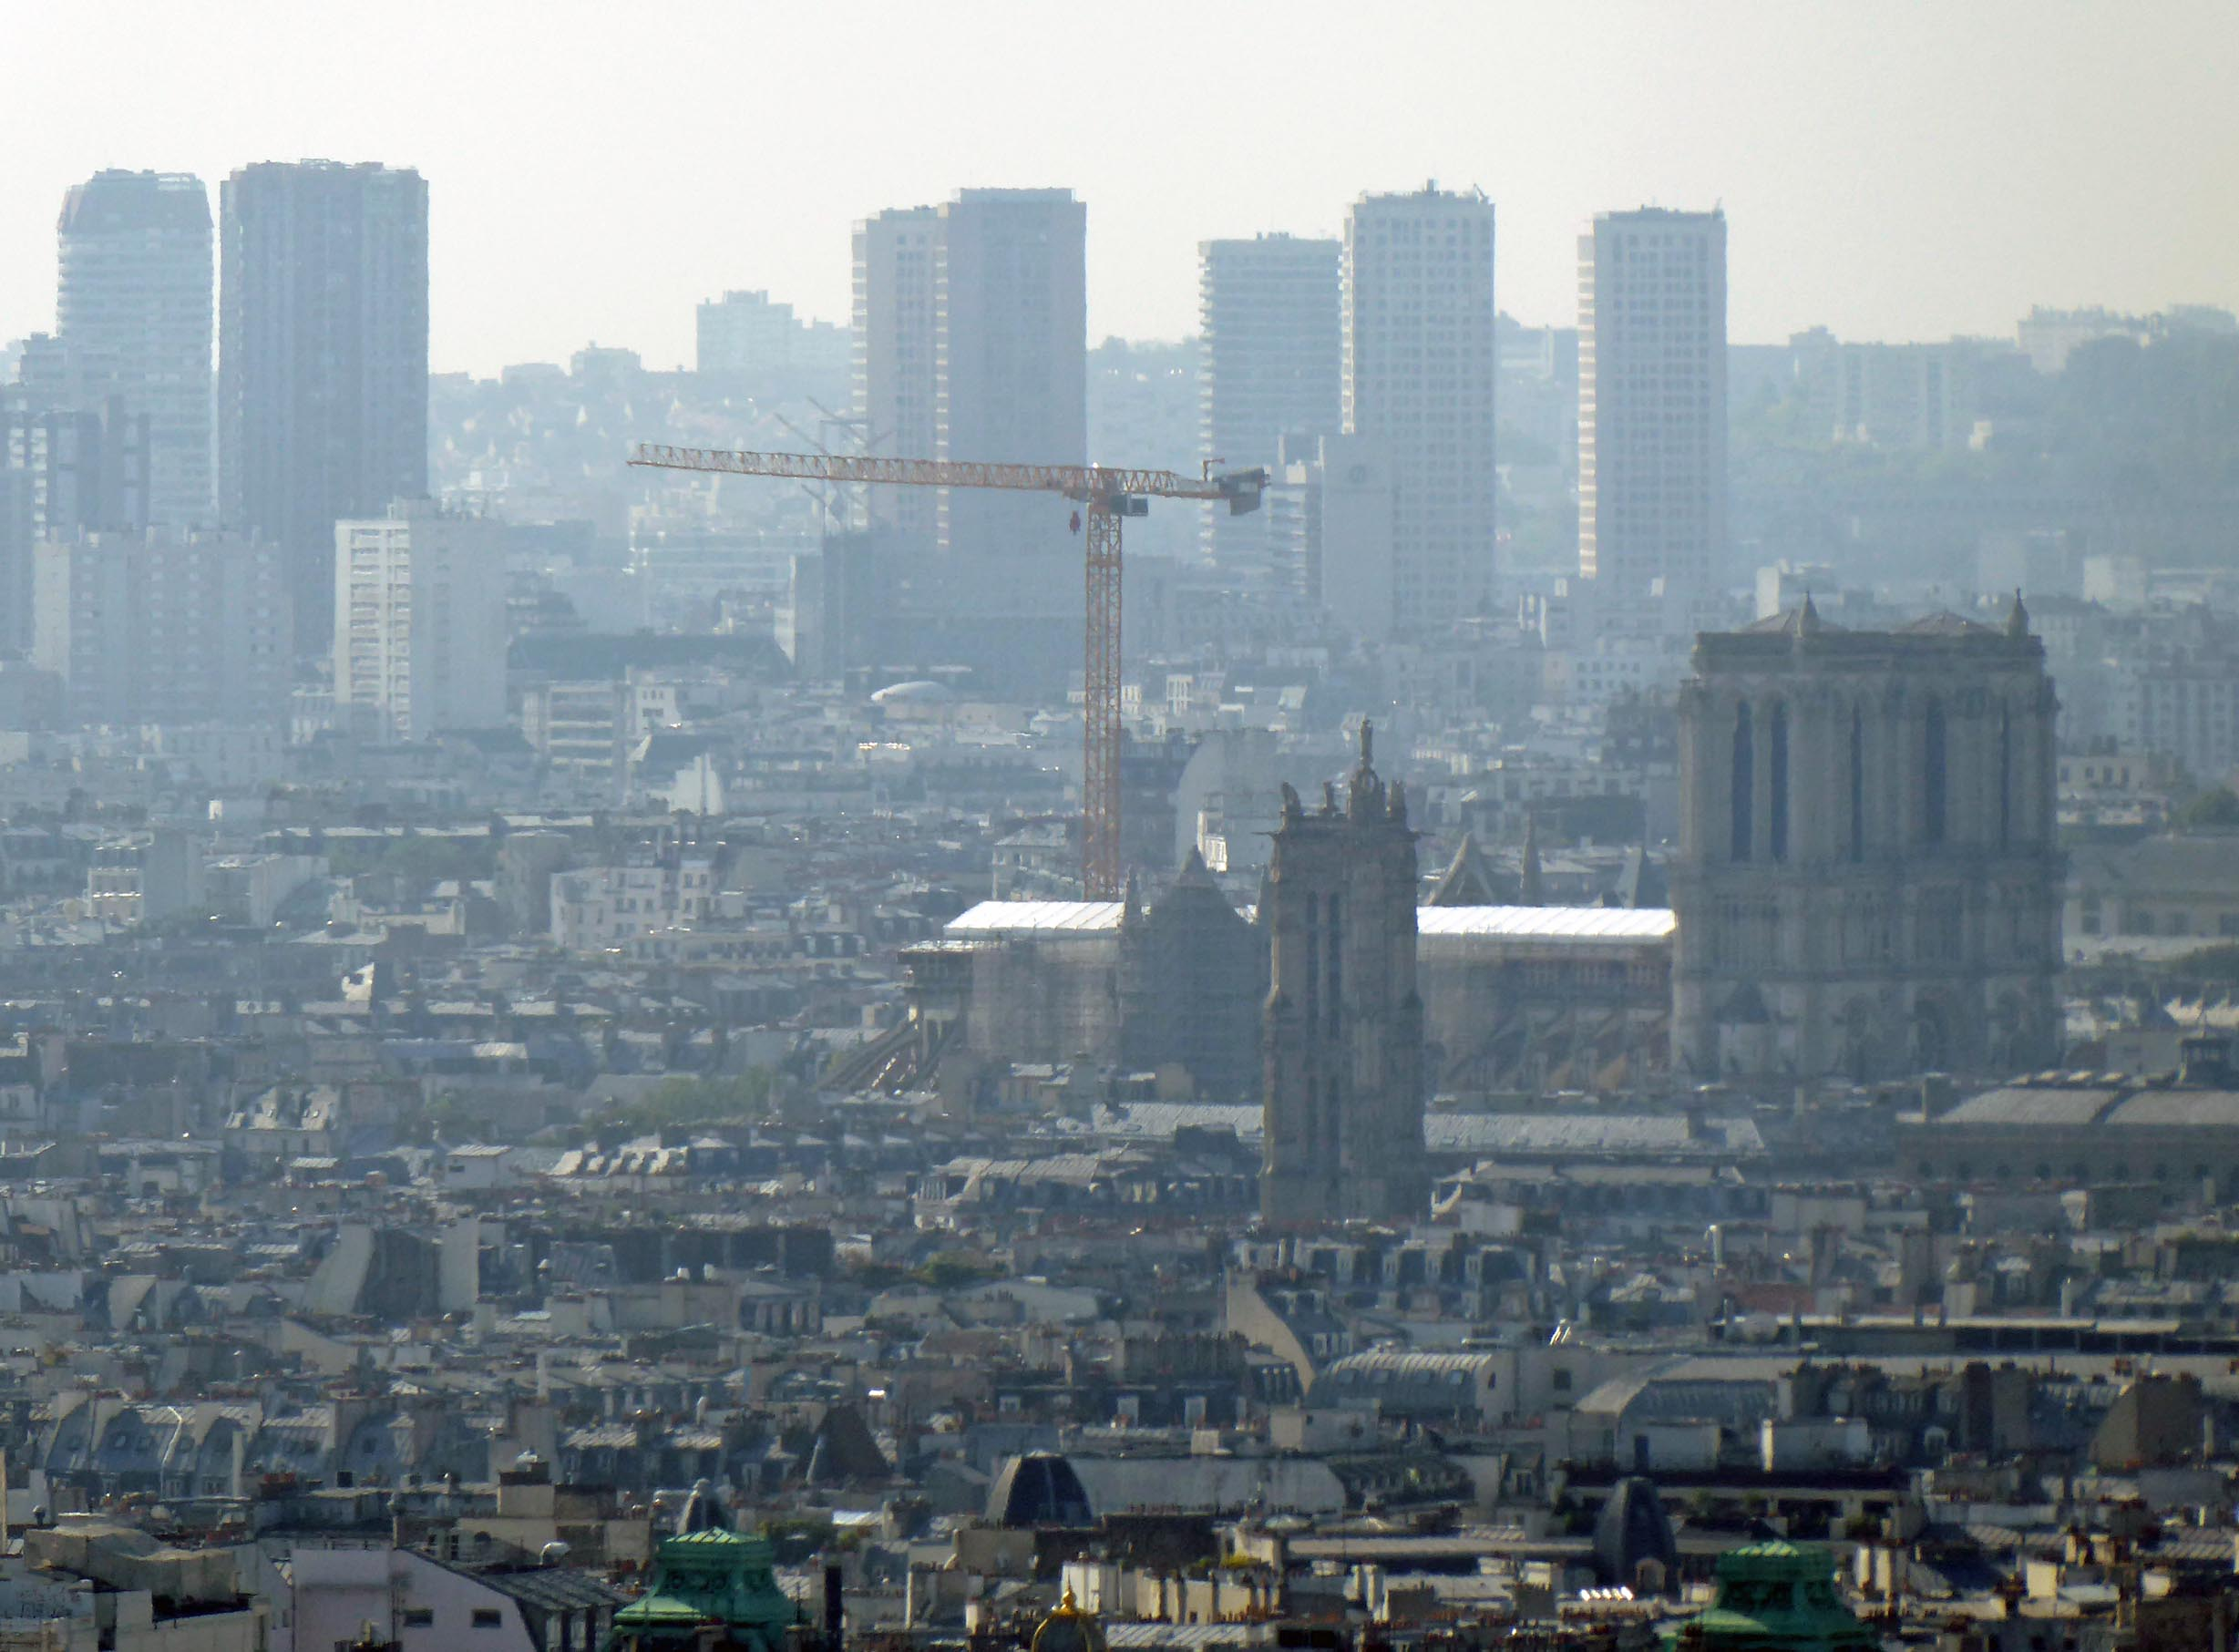 Cityscape with large crane